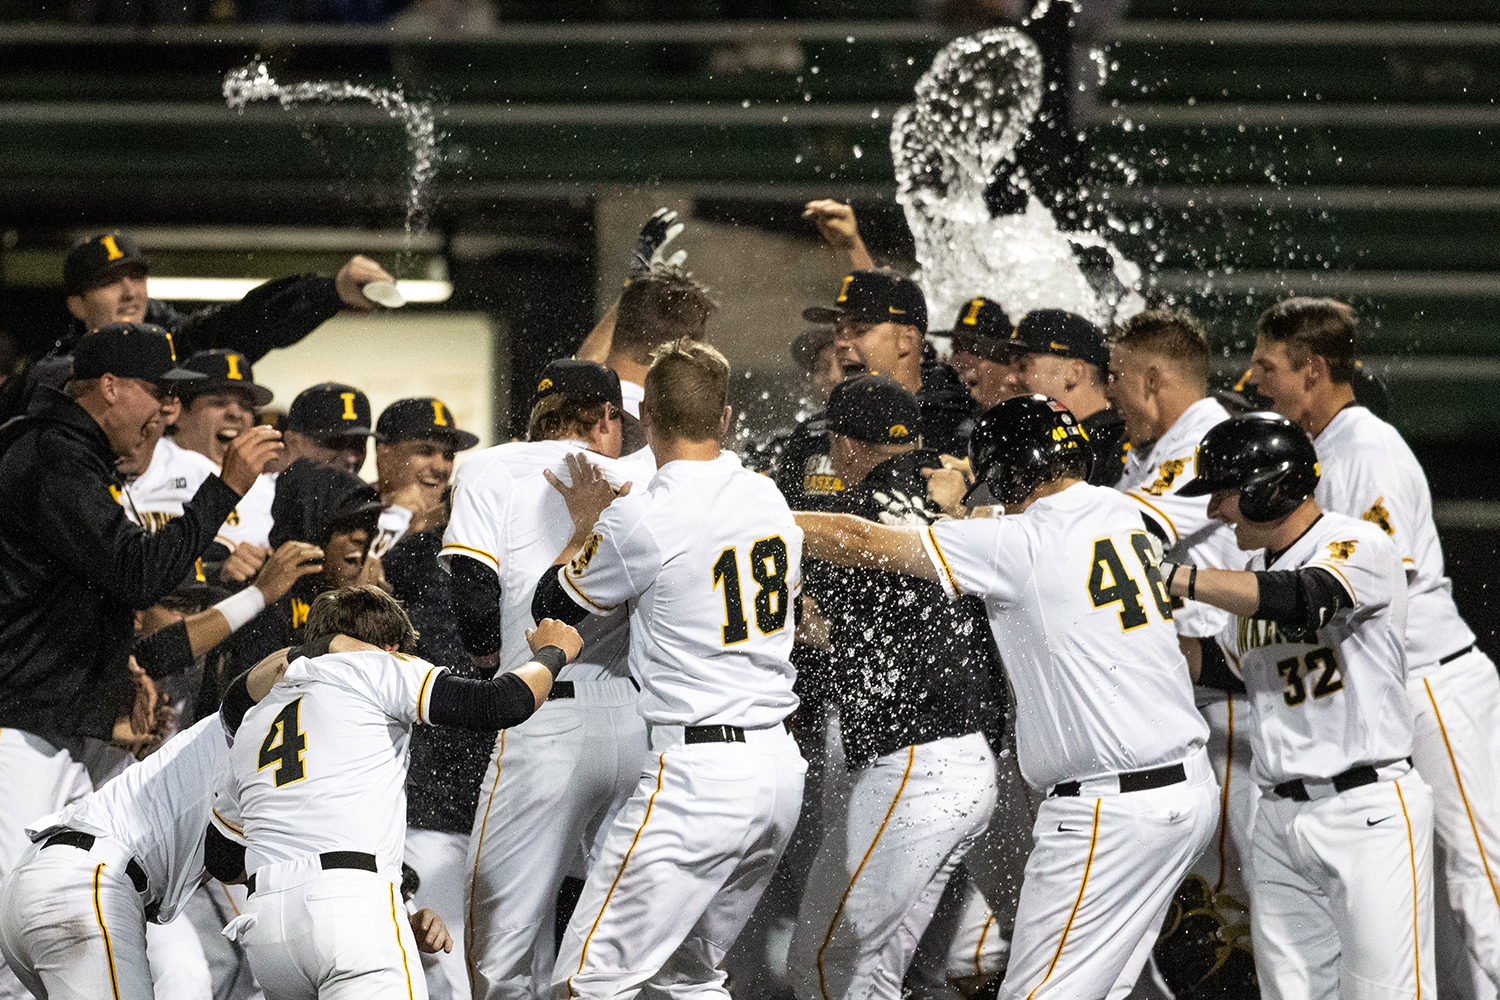 Iowa+outfielder+Justin+Jenkins+bunts+during+the+baseball+game+against+Milwaukee+at+Duane+Banks+Field+on+Tuesday%2C+April+23%2C+2019.+The+Hawkeyes+defeated+the+Panthers+5-4.